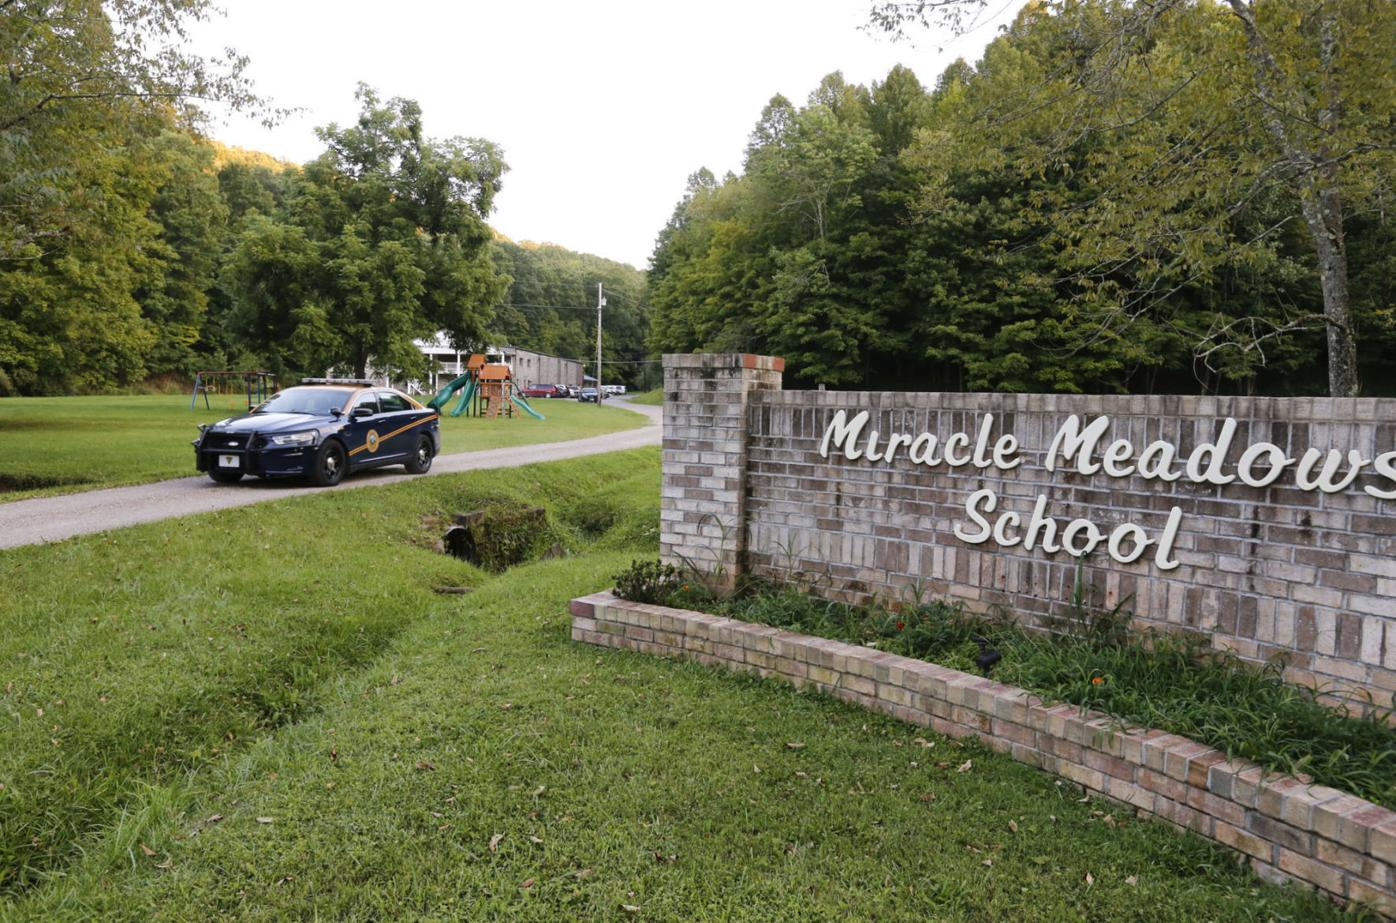 Miracle Meadows